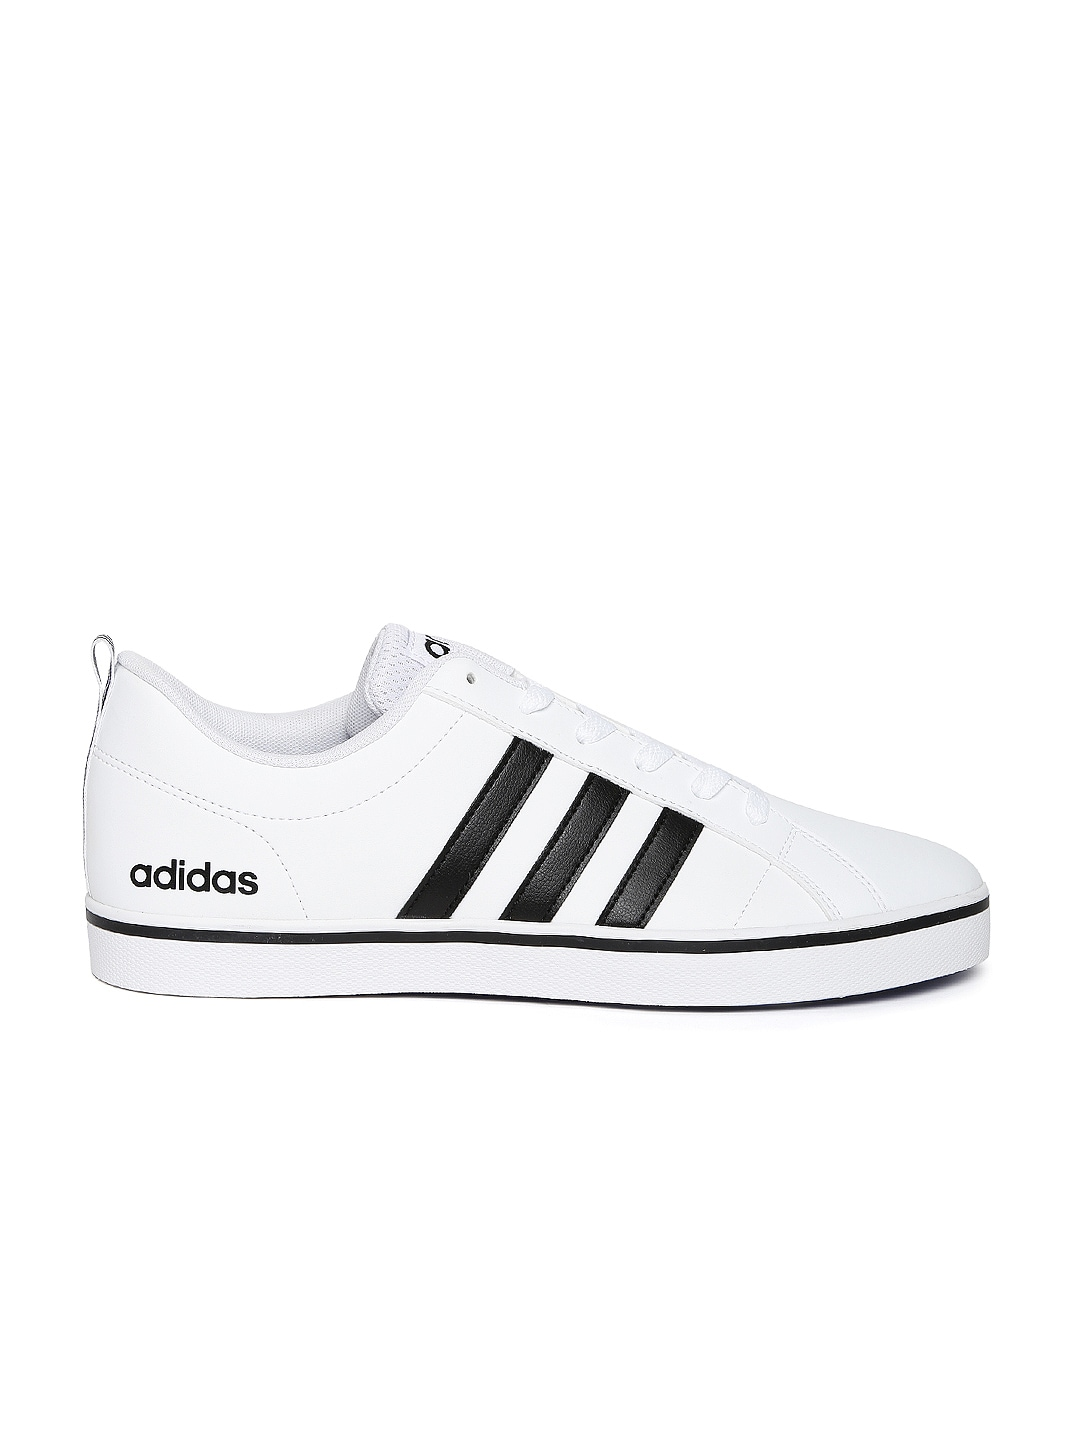 74d91d4e307b7 Men Shoes Adidas uk Casual For Lfc co Wallbank Neo wE4Or4qx